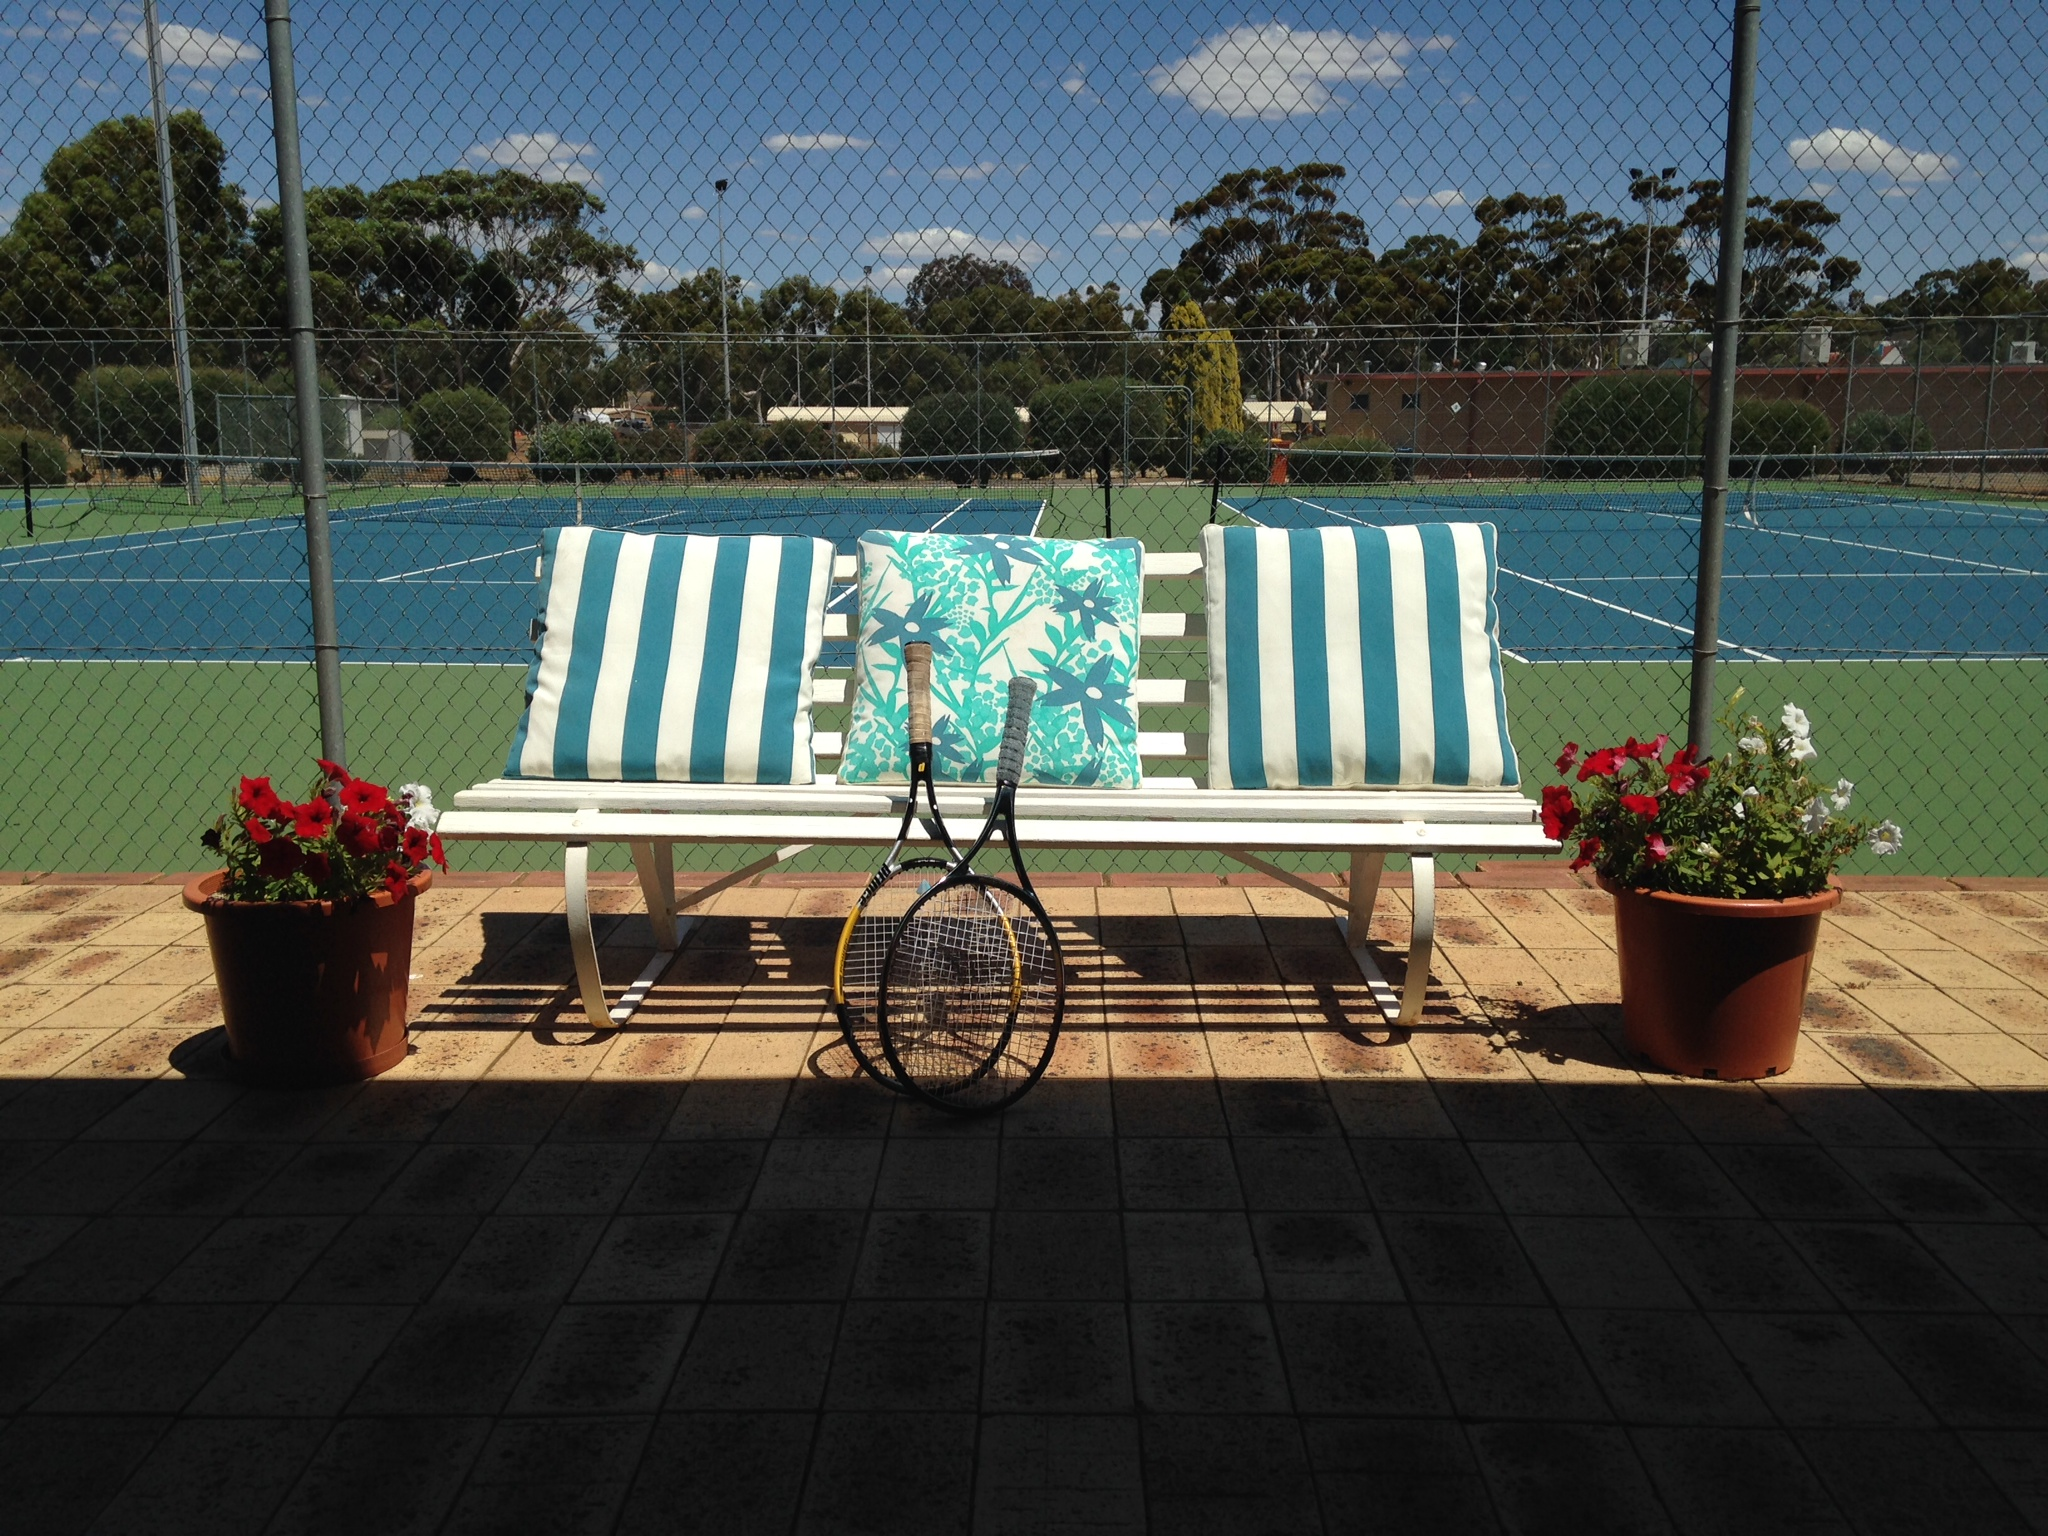 Tennis club chair